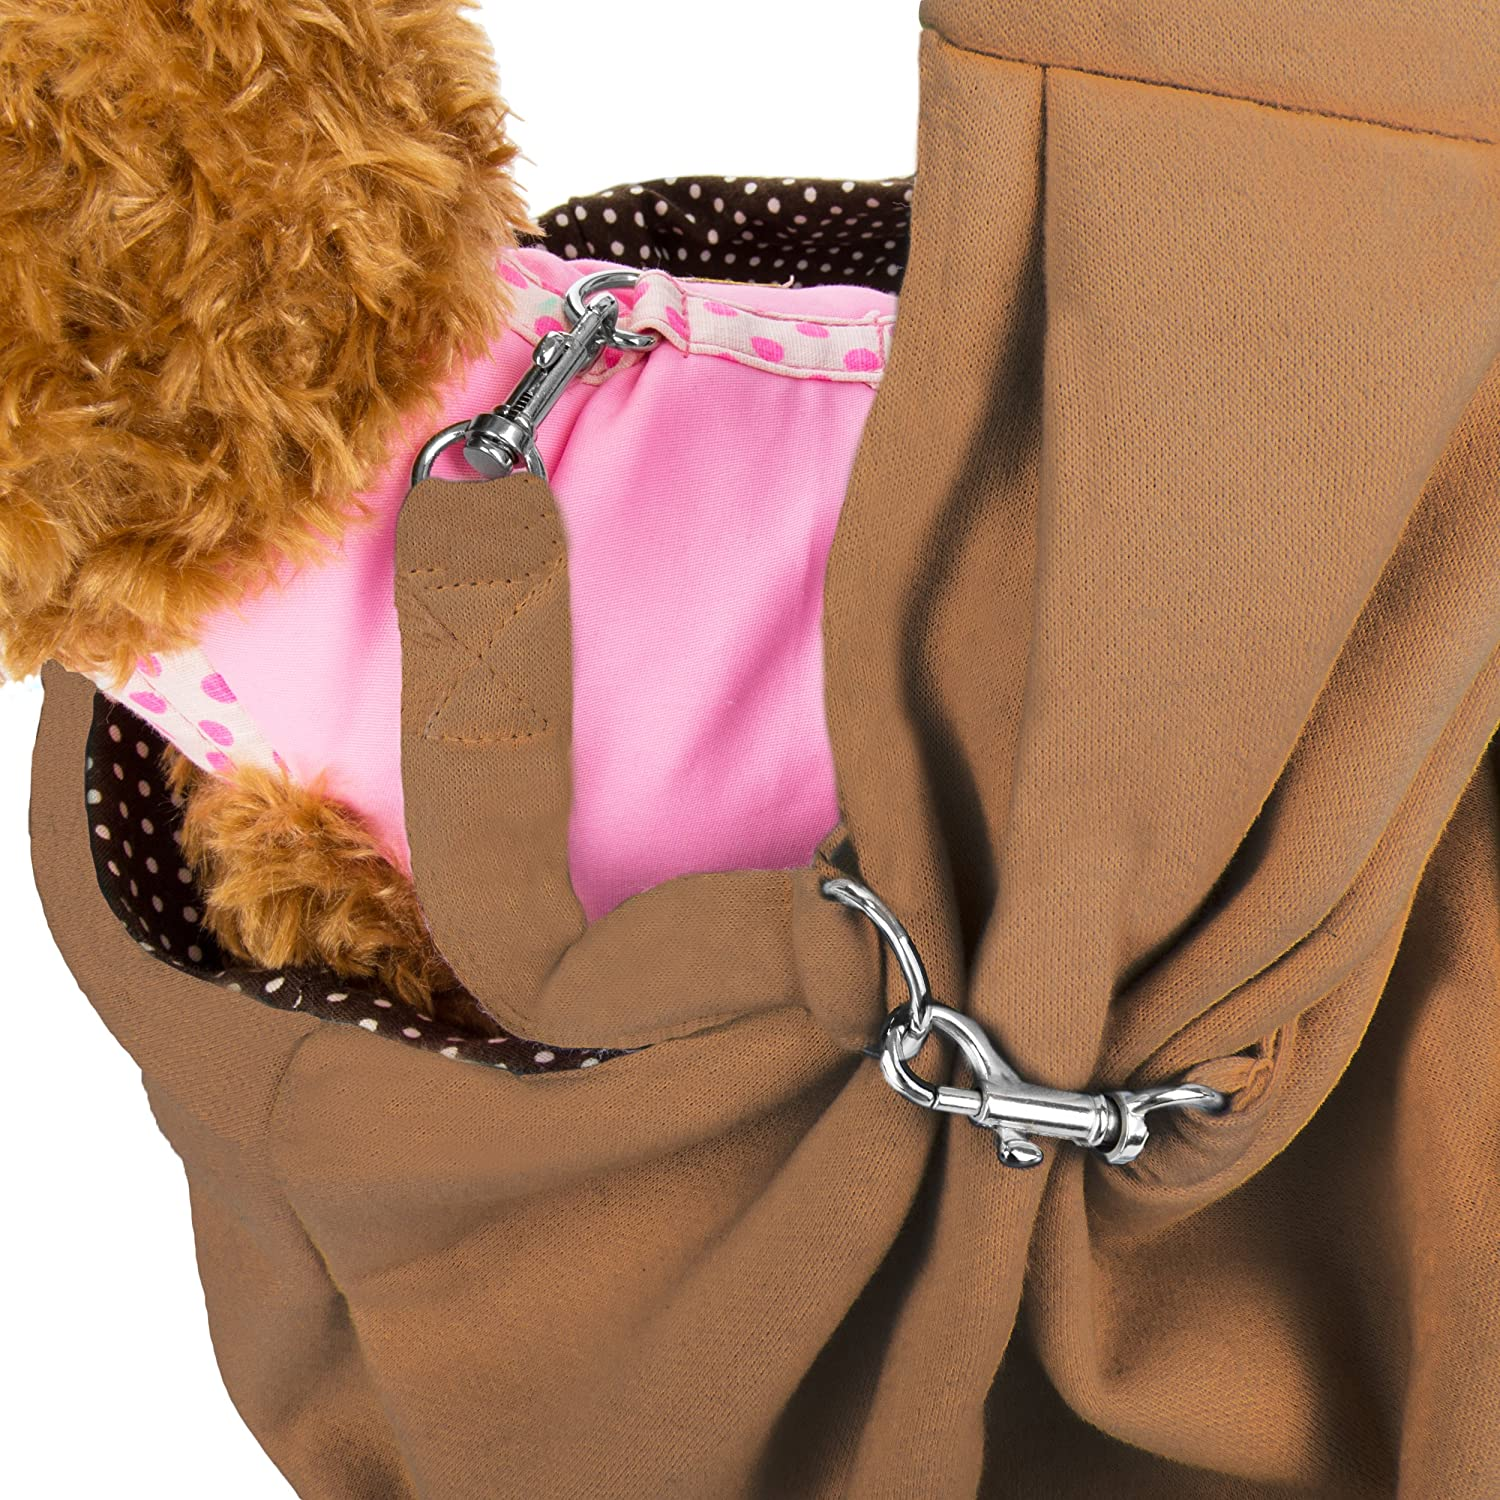 CUE CUE Pet 100% Plush Cotton Reversible Pet Sling Carrier Suitable for Small to Medium Sized Dogs, Cats, Rabbits, Pet's Mocha Brown